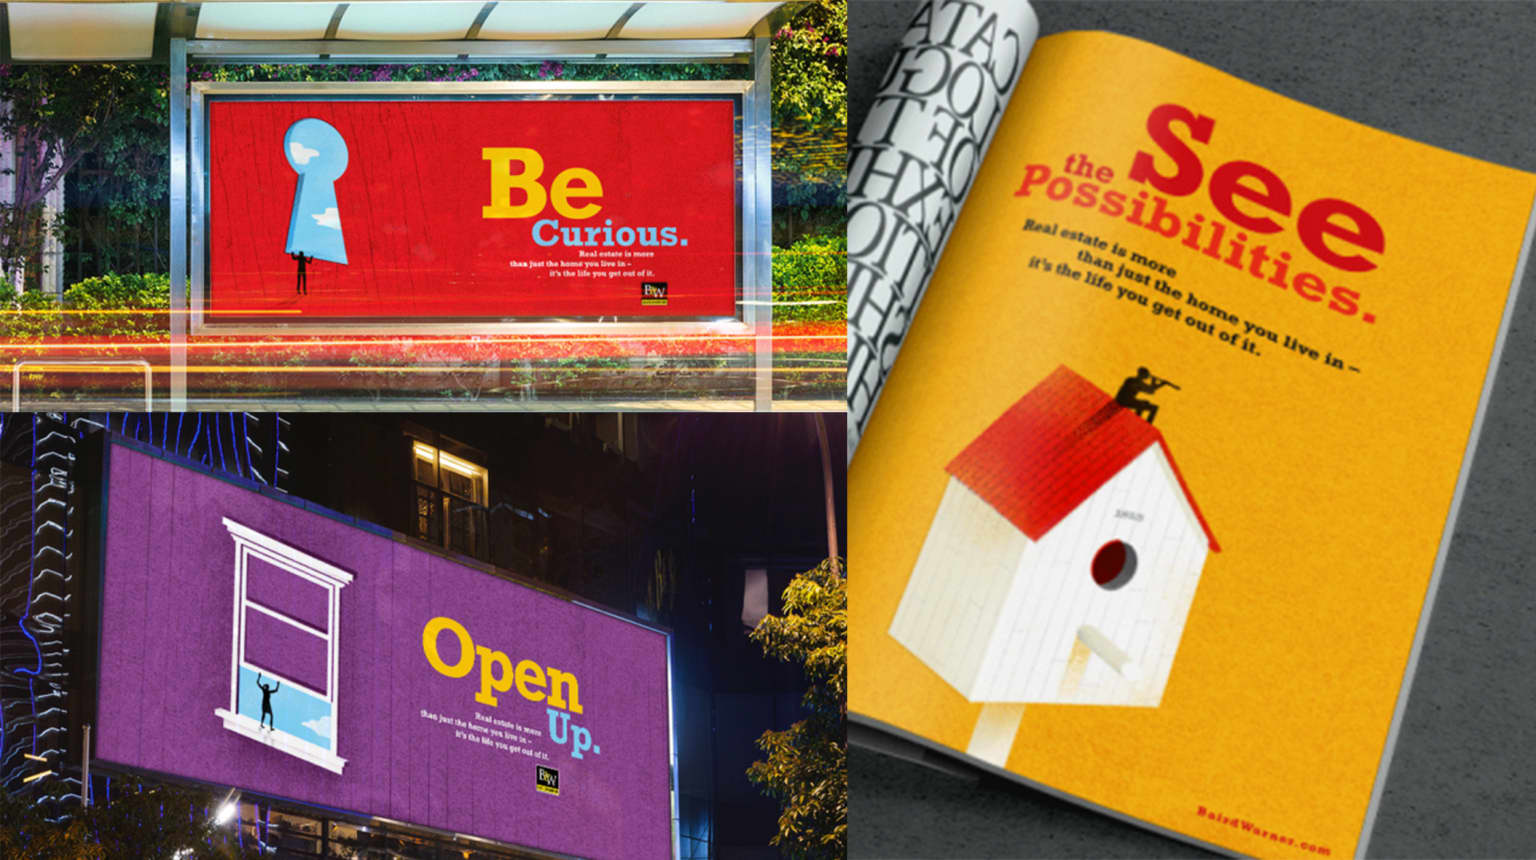 Baird & Warner 'Be Curious' Advertising Campaign